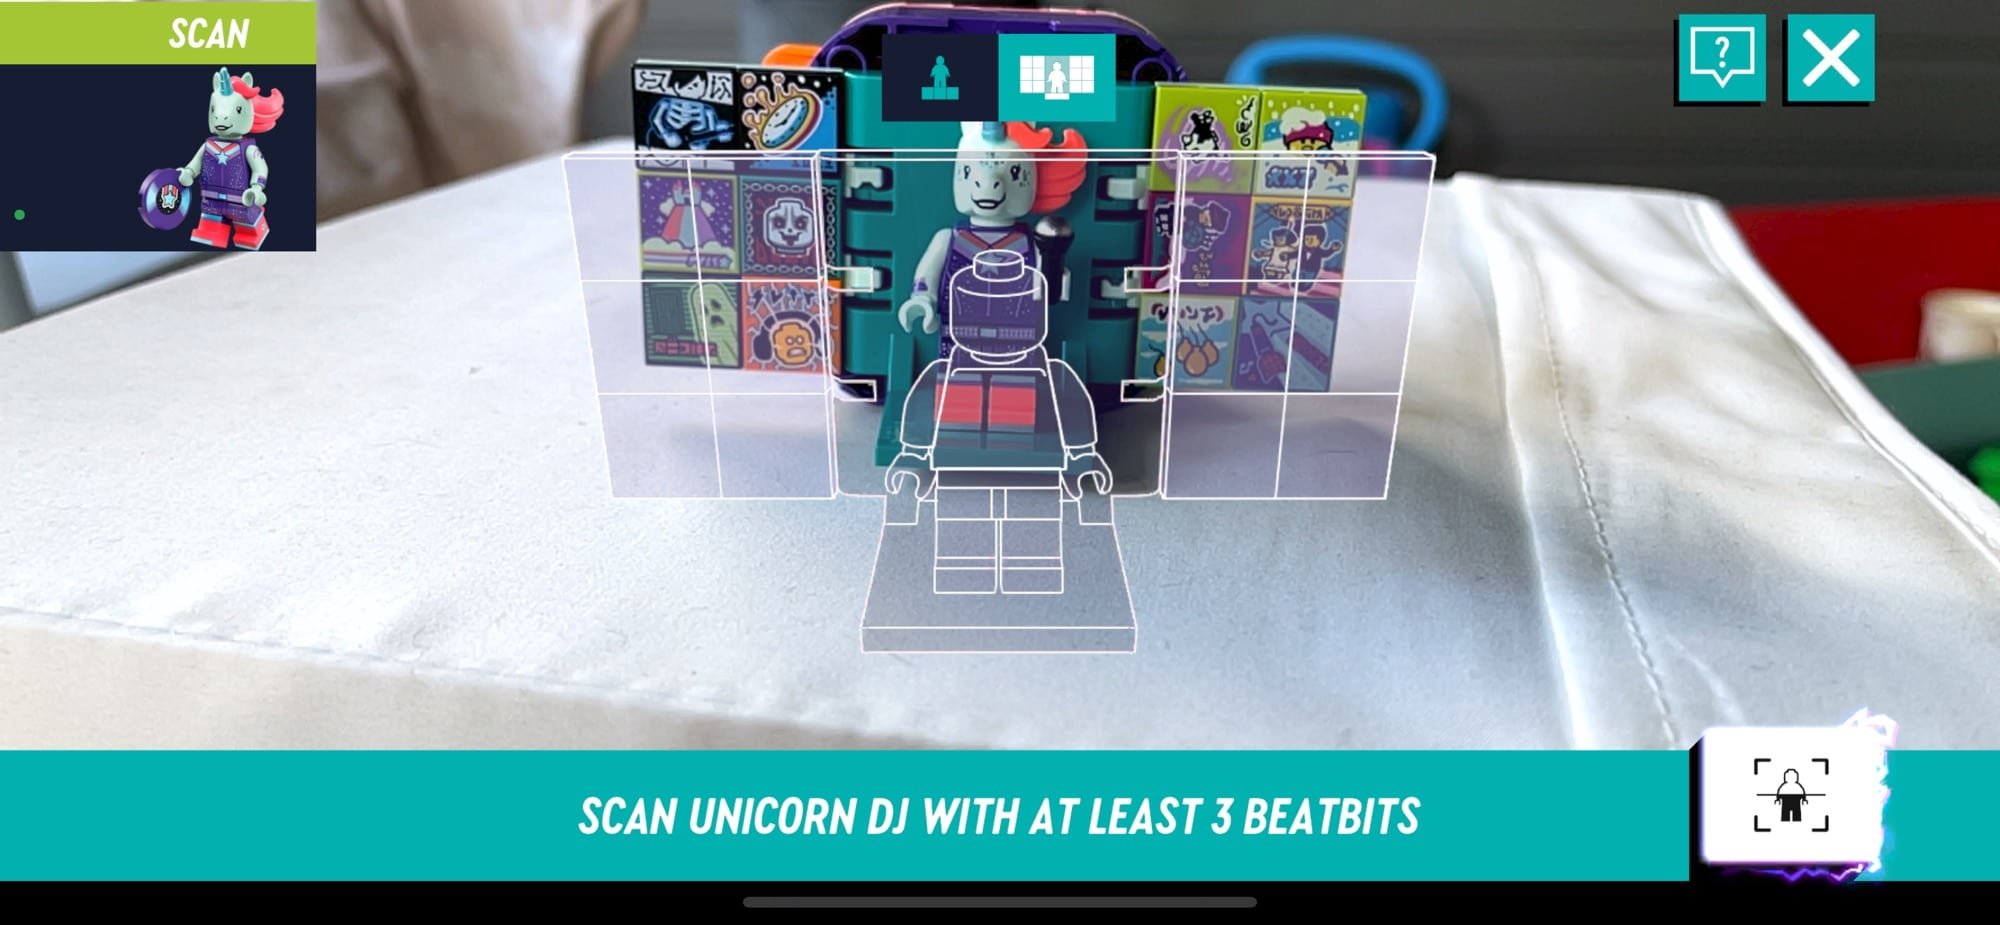 Scanning Lego in to run the app